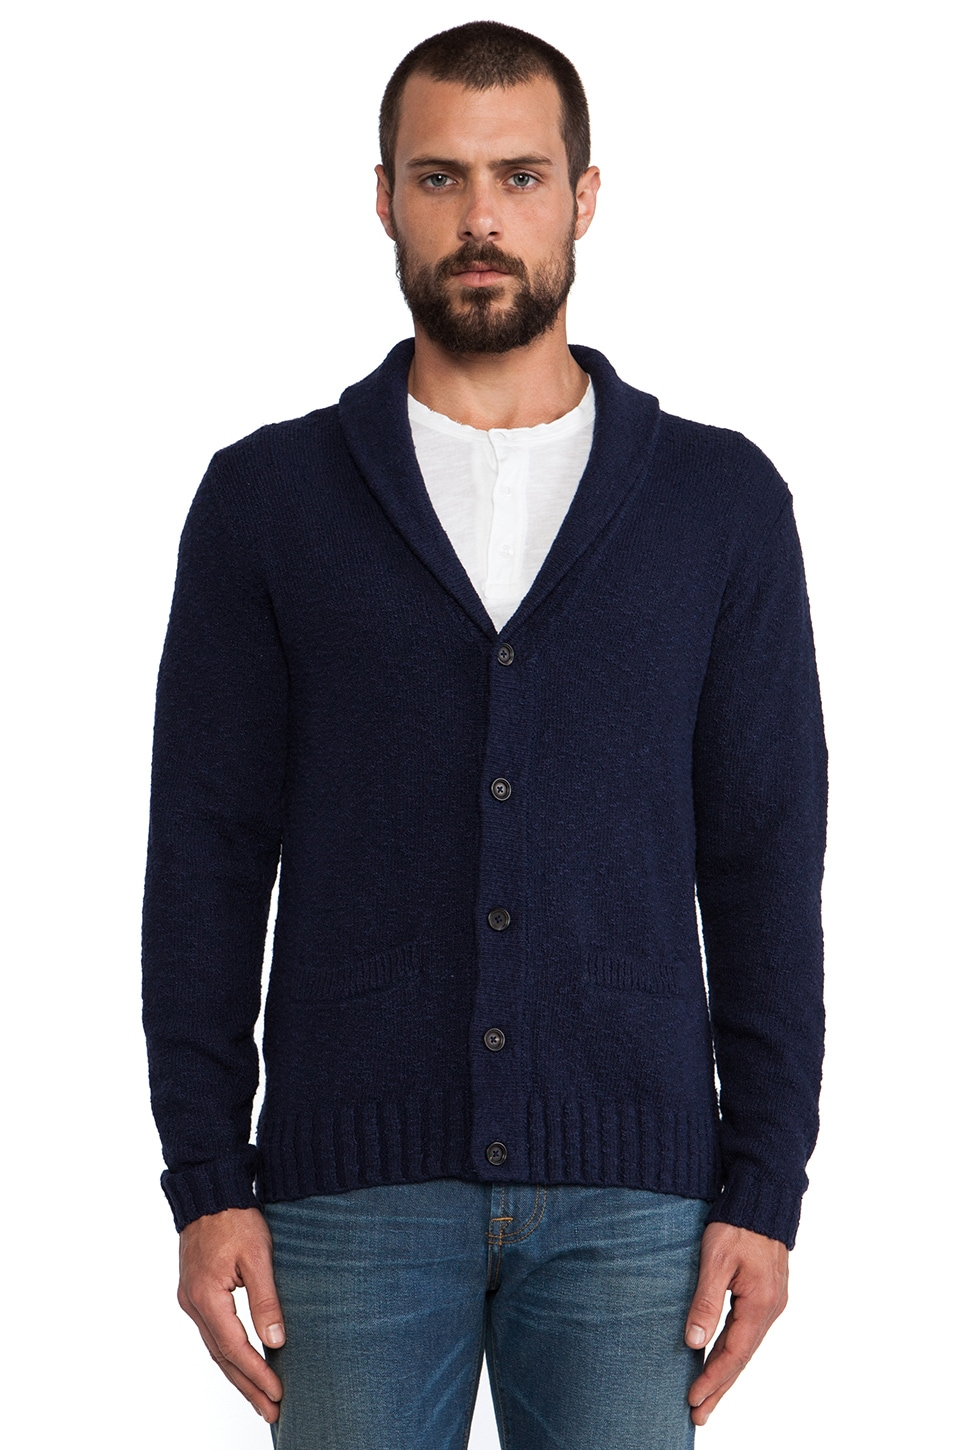 AG Adriano Goldschmied Span Shawl Cardigan in Double Indigo